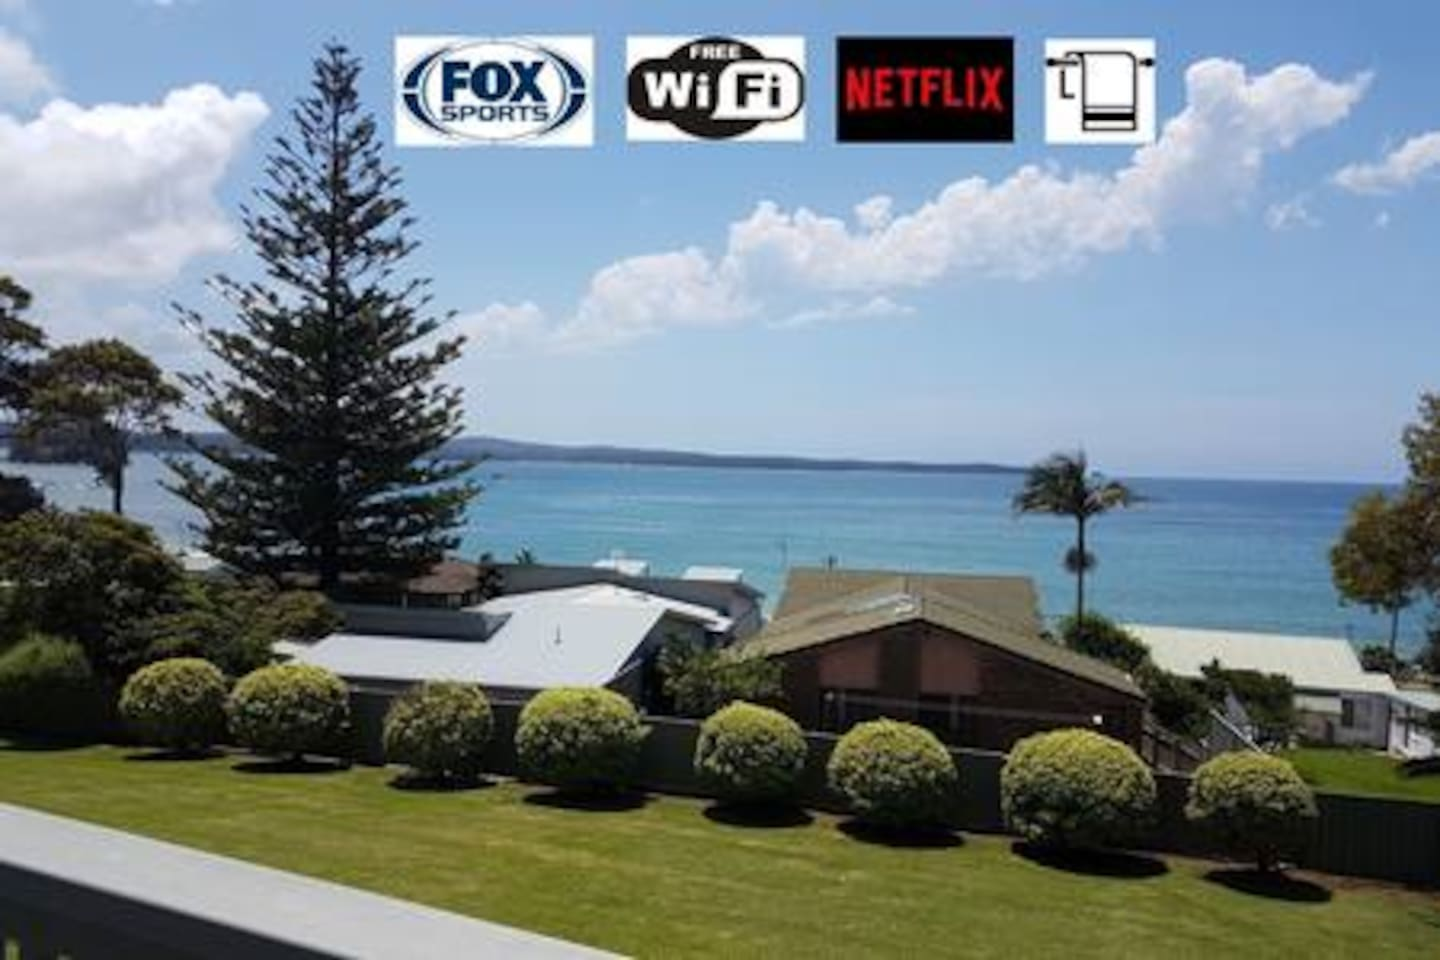 Great Caseys Beach Views - Free Wifi, Netflix, Fox Sports & All Linen